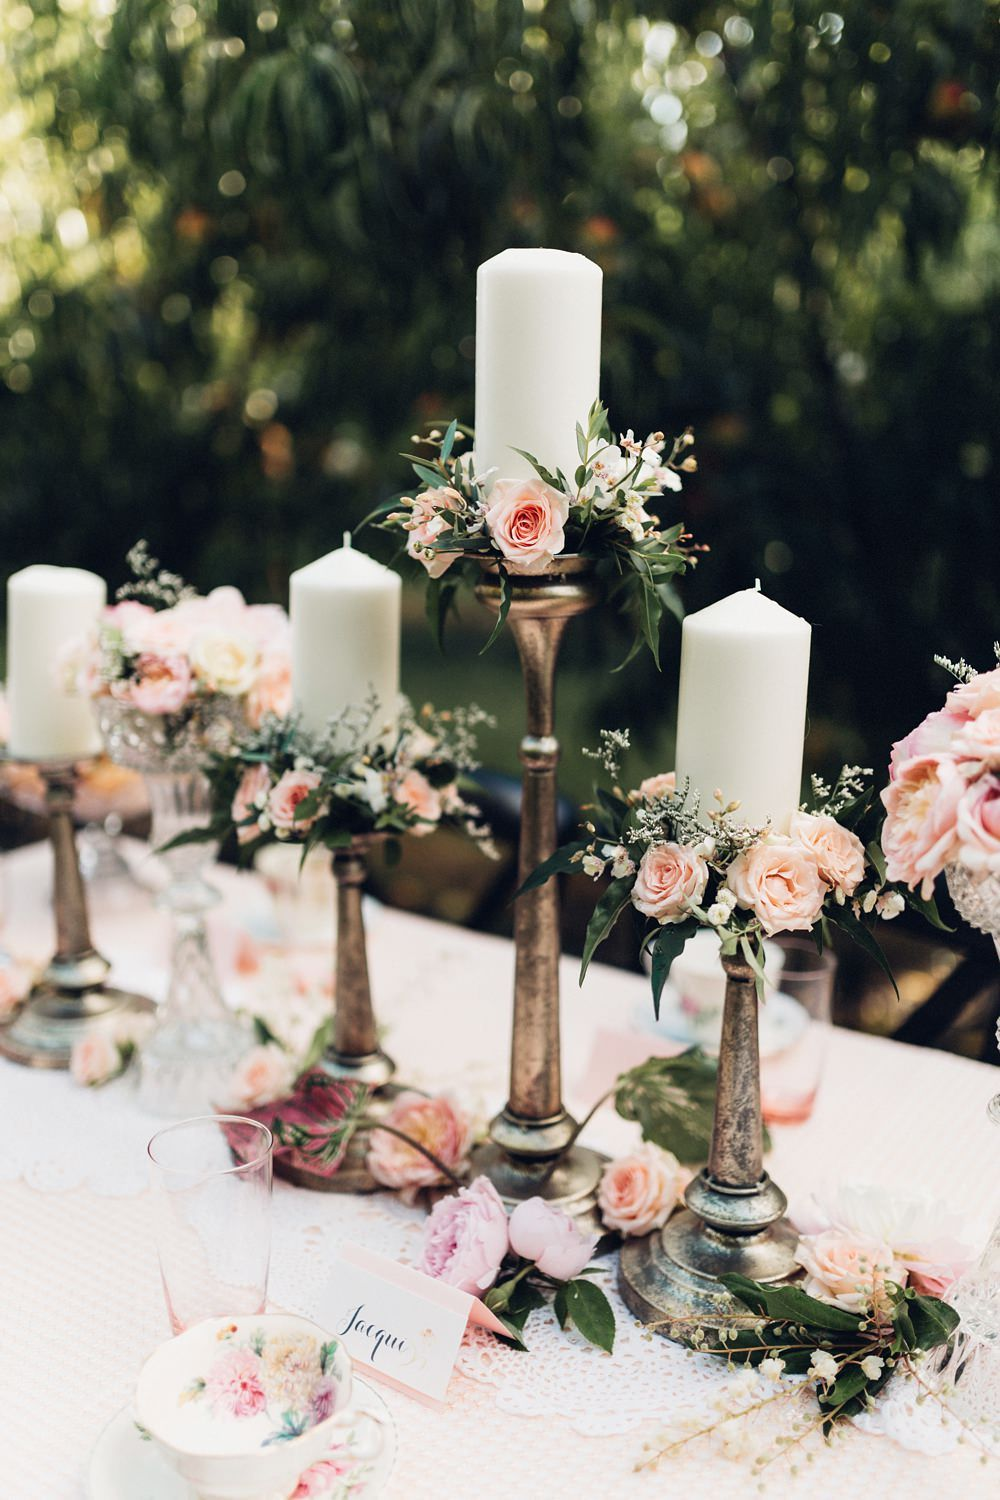 Peach Orchard Wedding Inspiration Rock My Wedding Uk Wedding Planning Directory Vintage Wedding Centerpieces Wedding Decorations Wedding Table